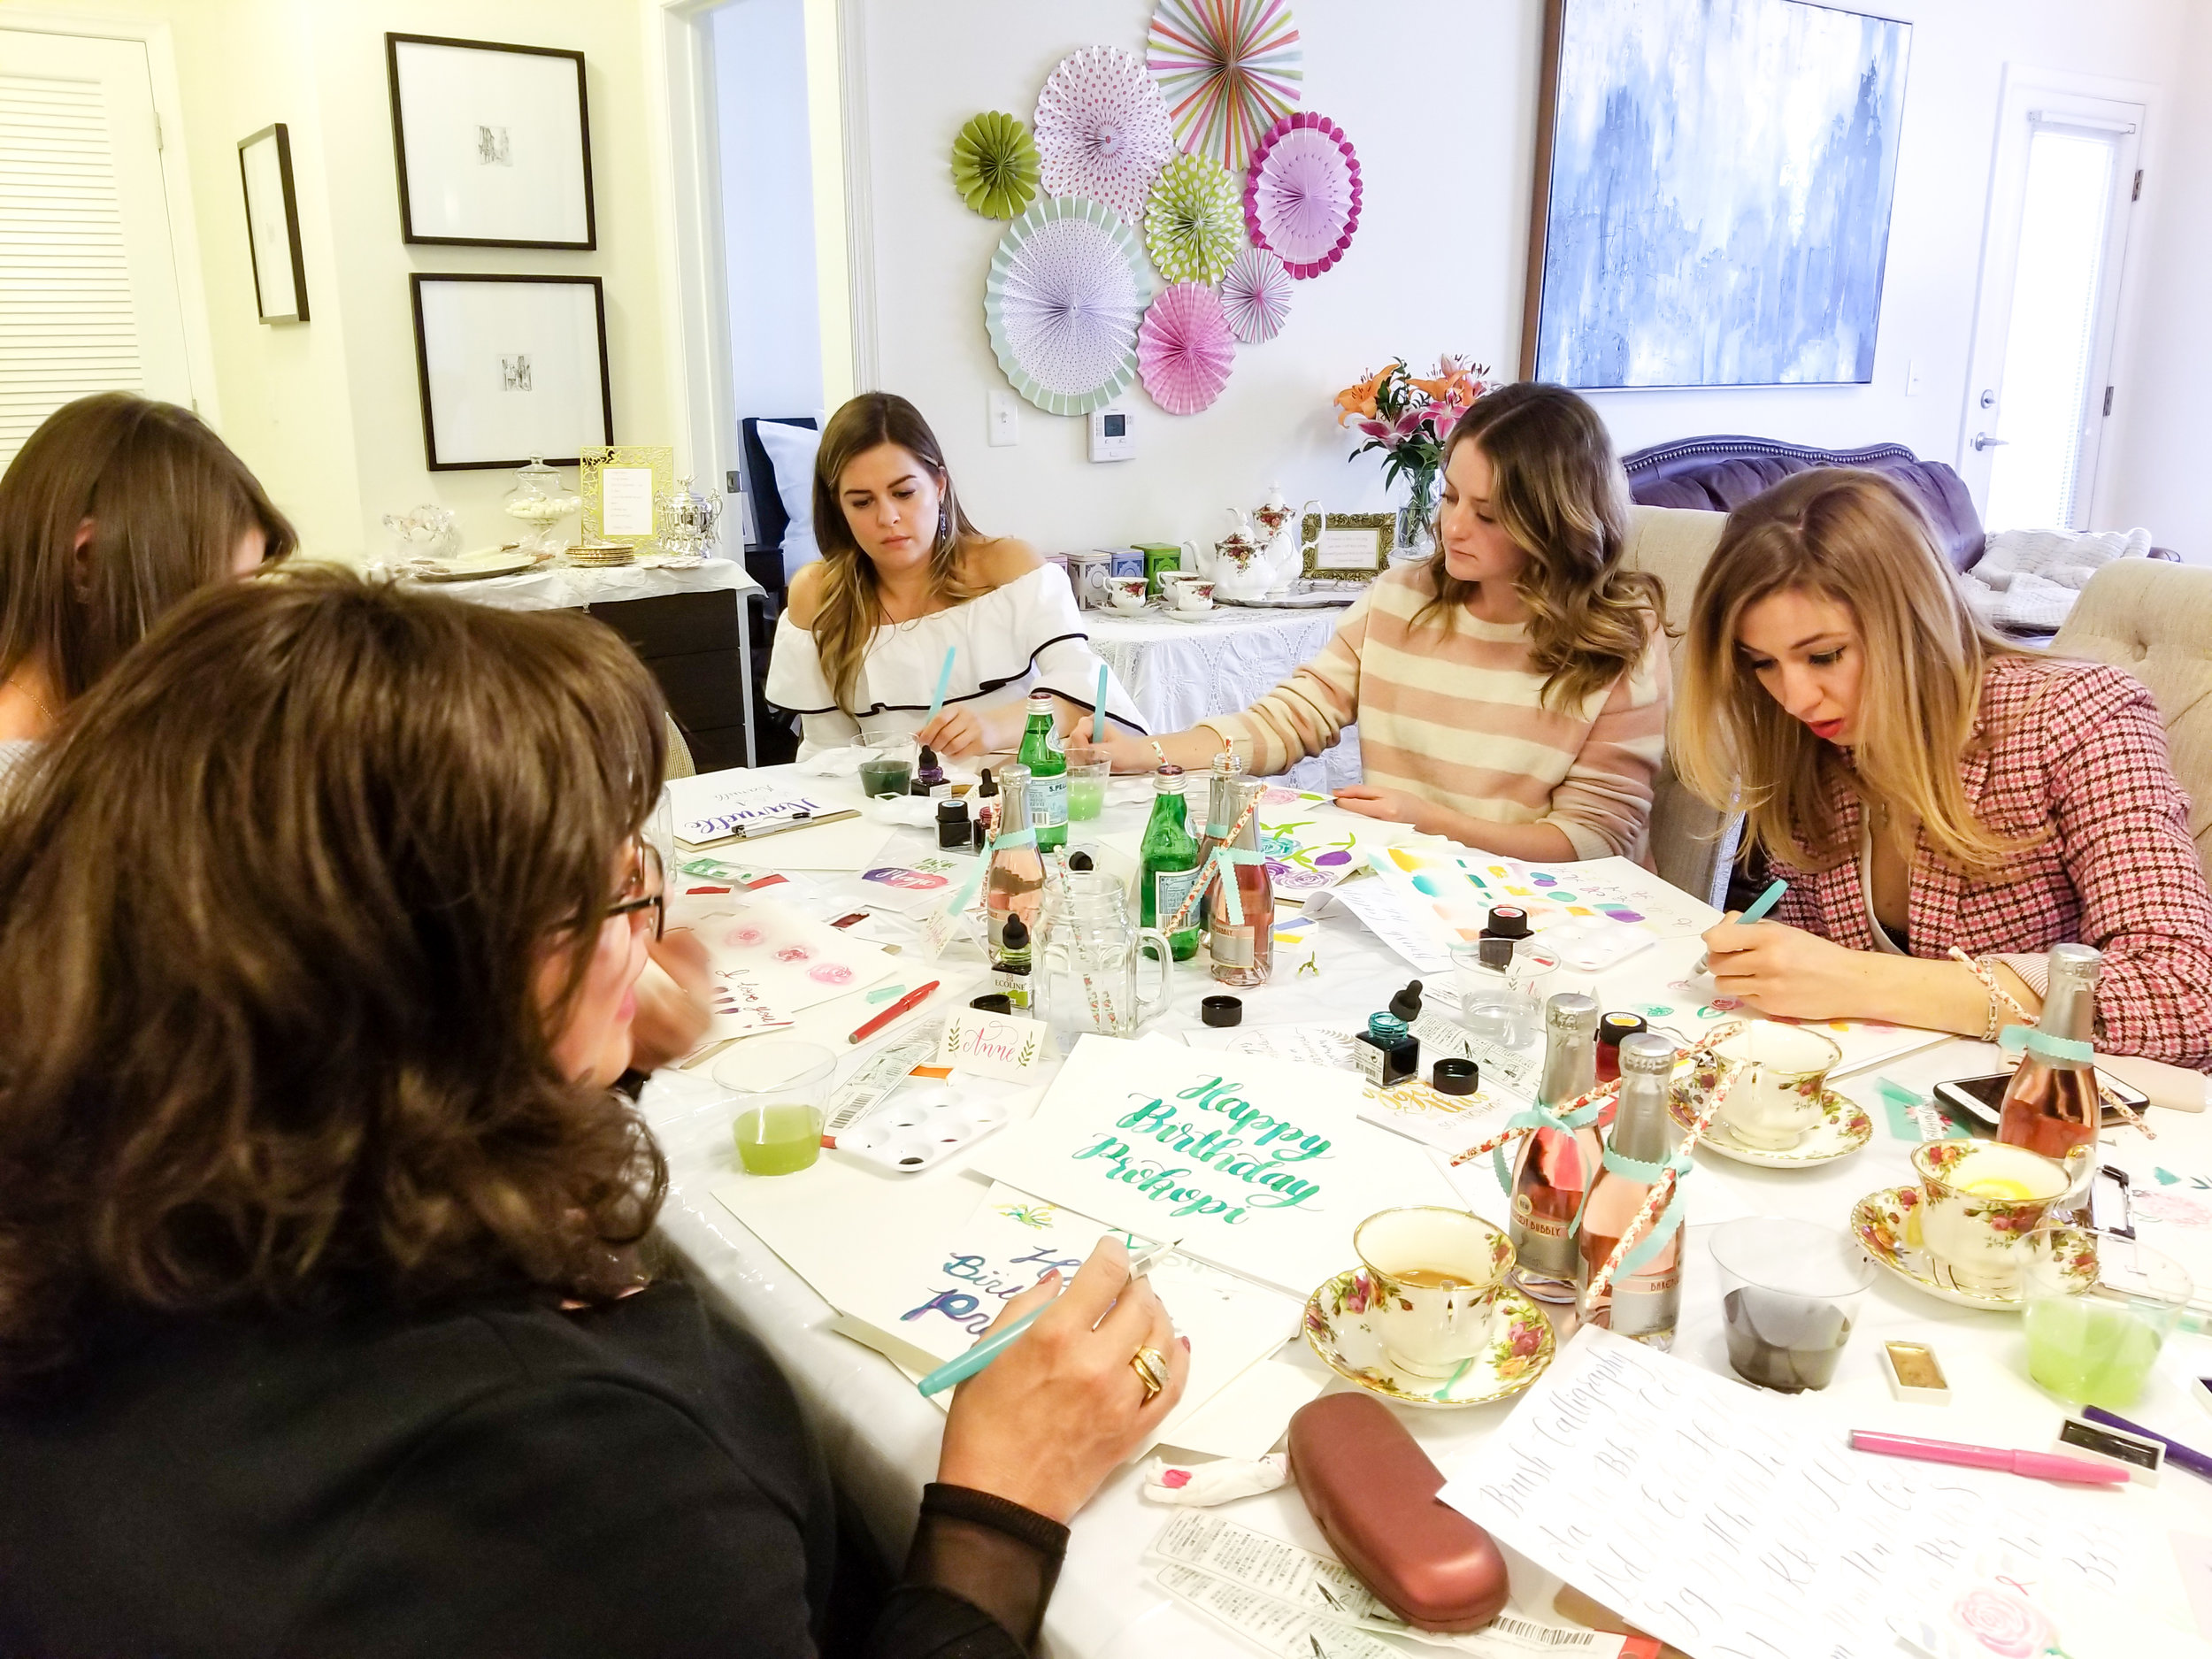 Private Workshop - Invite me to your next party! Private workshops are a great way to learn something new with your friends and family. I can create custom workshop experiences for both adults and kids ages 8 and up. I would be happy to work together to choose a mix of calligraphy and watercolor activities to delight your guests!